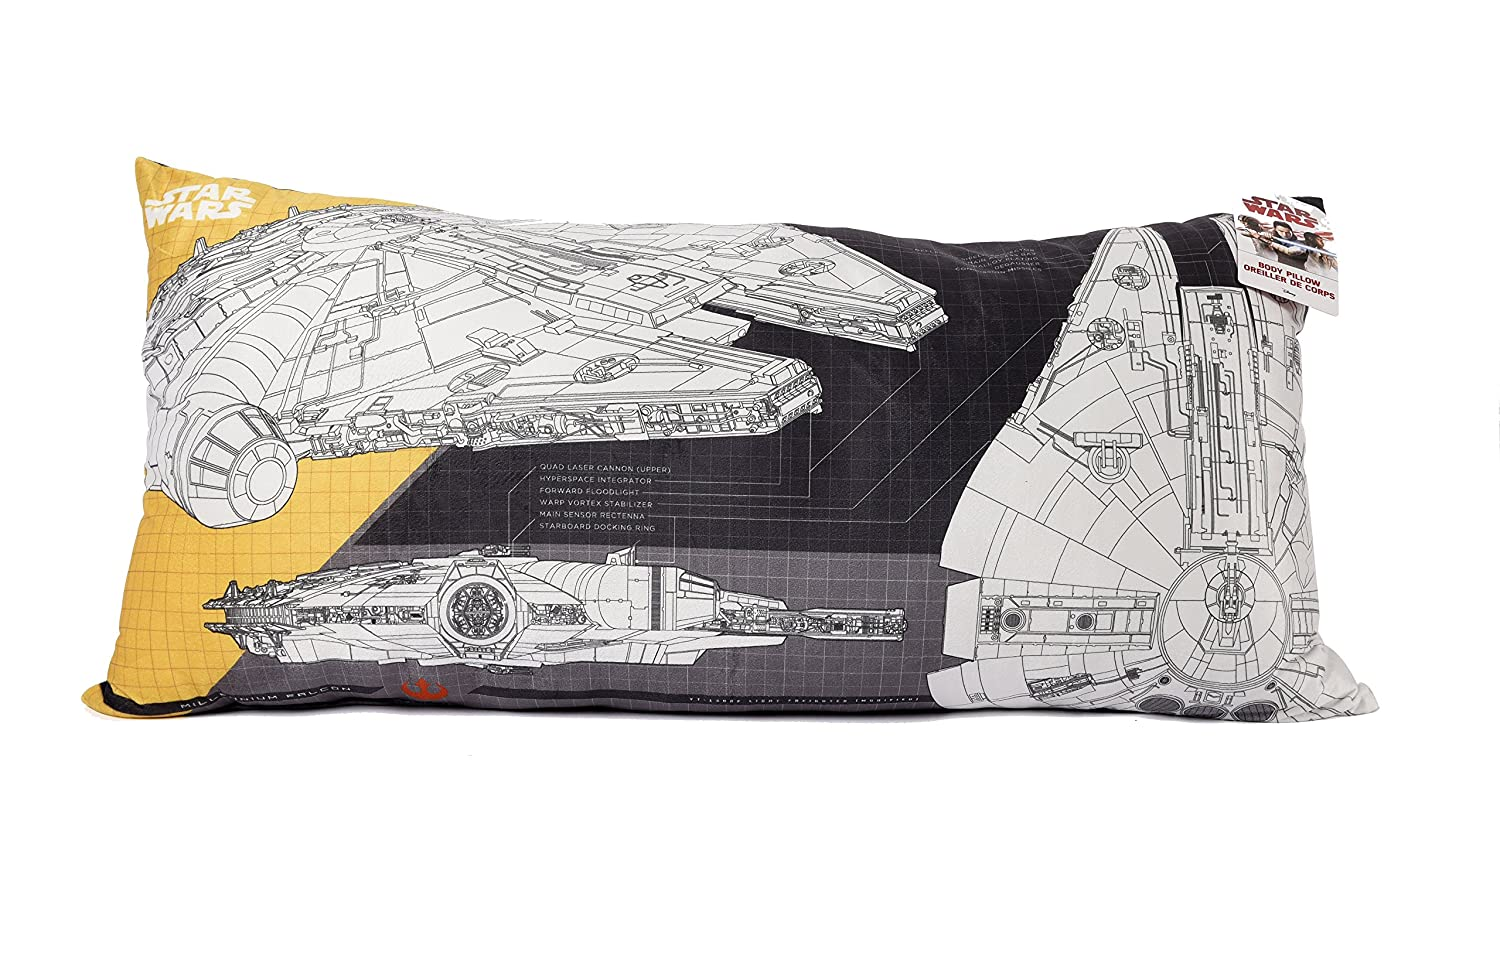 "Wars Star 94460 Millennium Falcon Ultra Soft Body Pillow - 18"" x 36"""